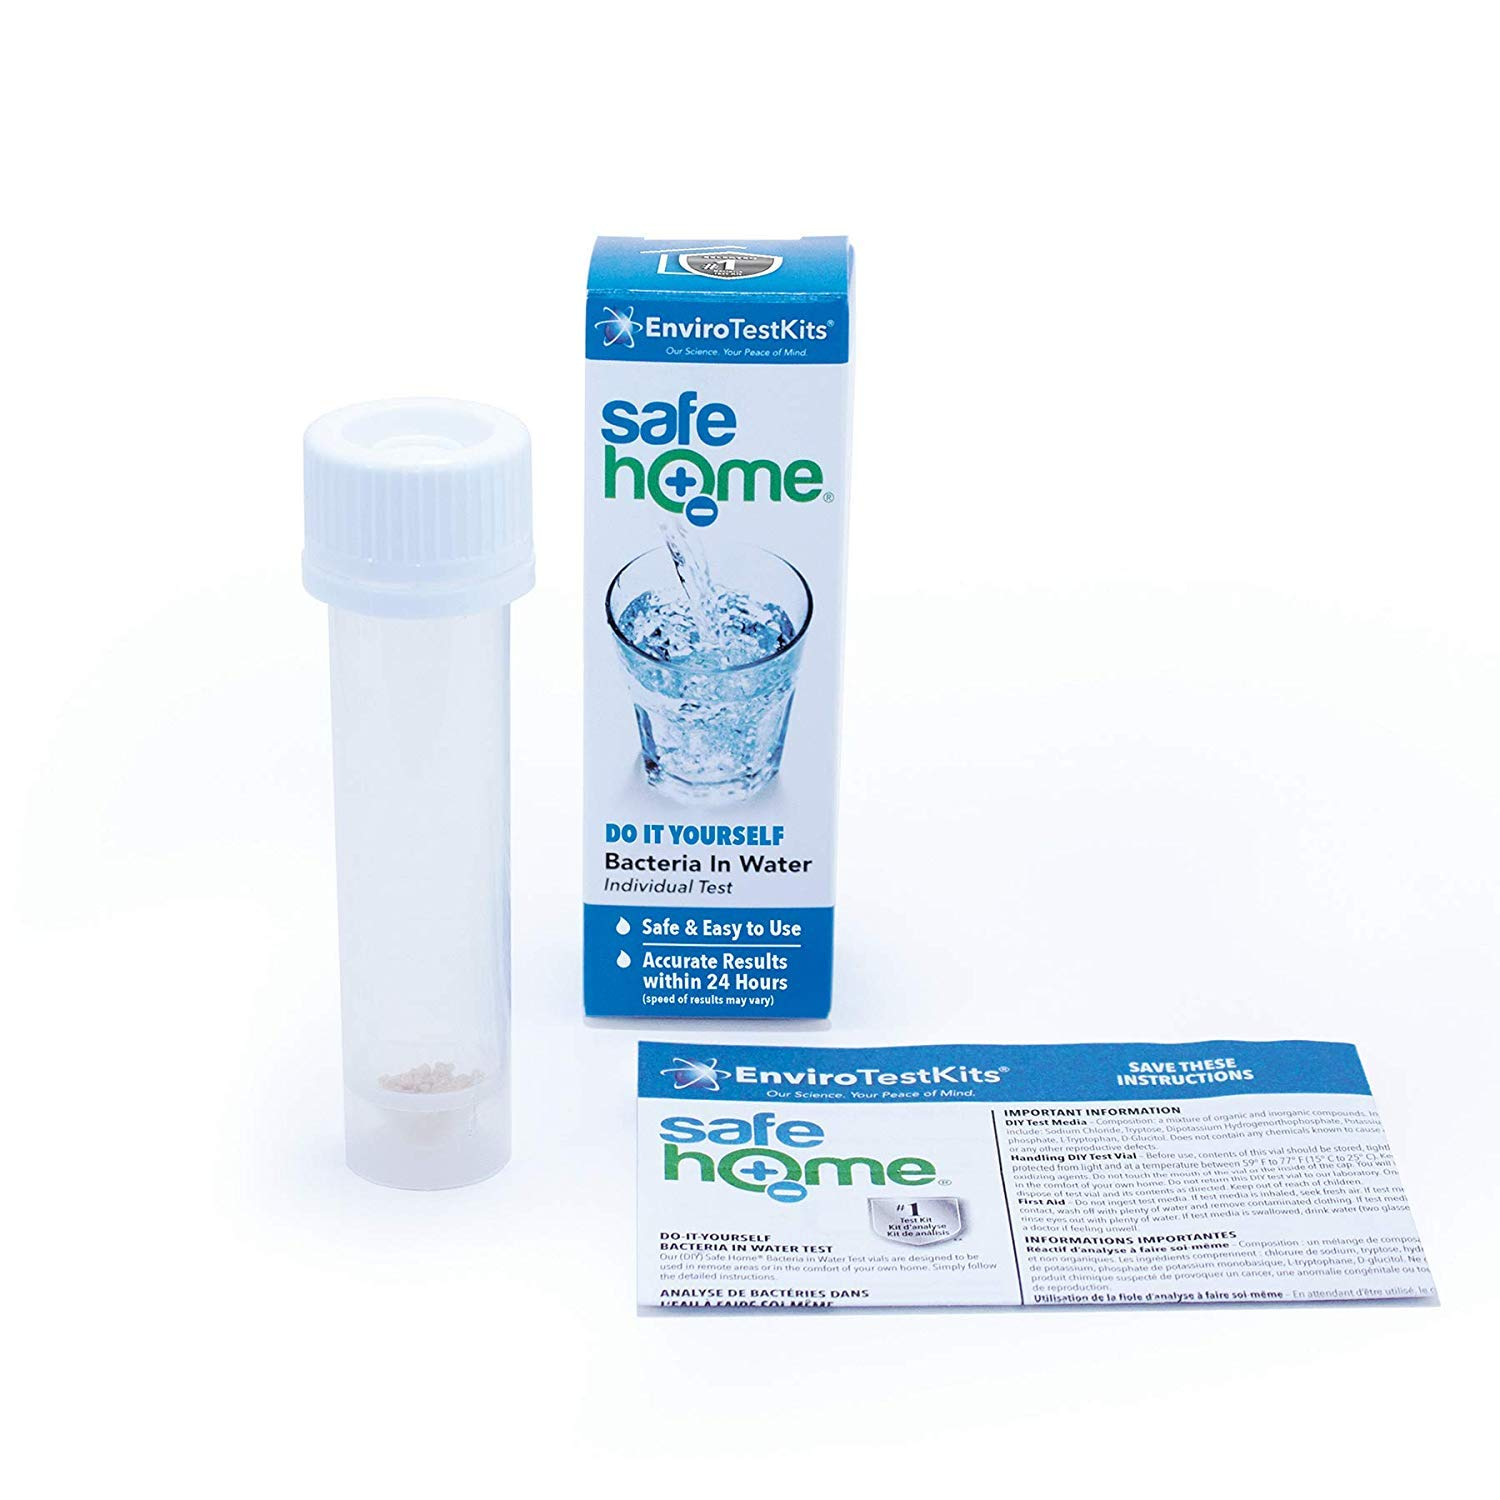 Safe Home DIY BACTERIA in Drinking Water Test Kit